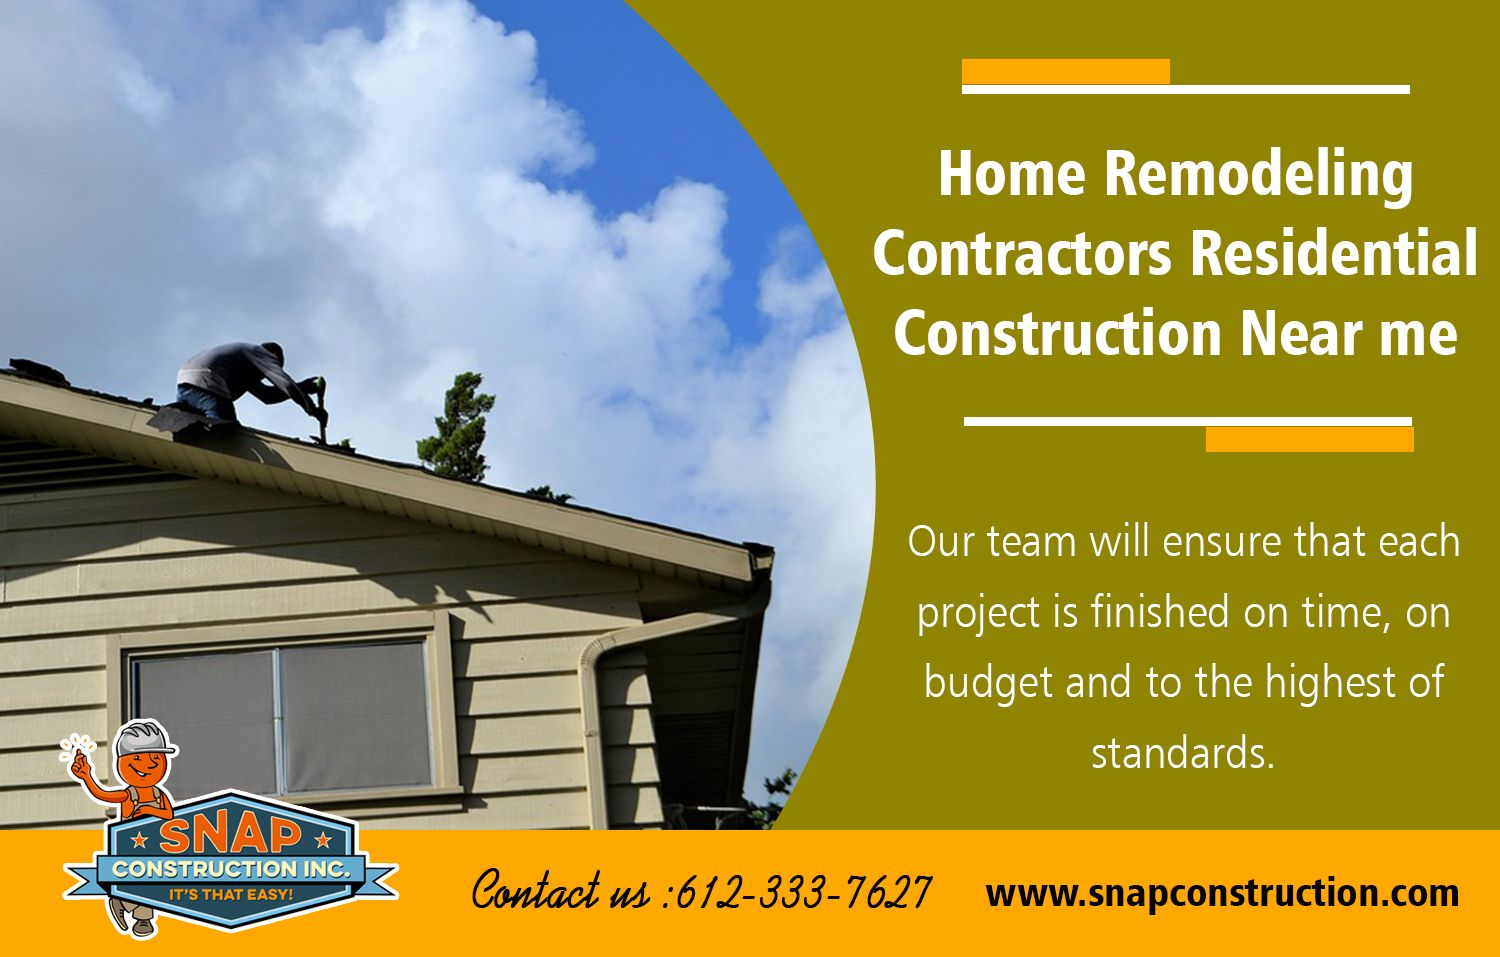 House Remodeling Contractors Near Me A Good Home Remodeling Contractors Residential Construction Near